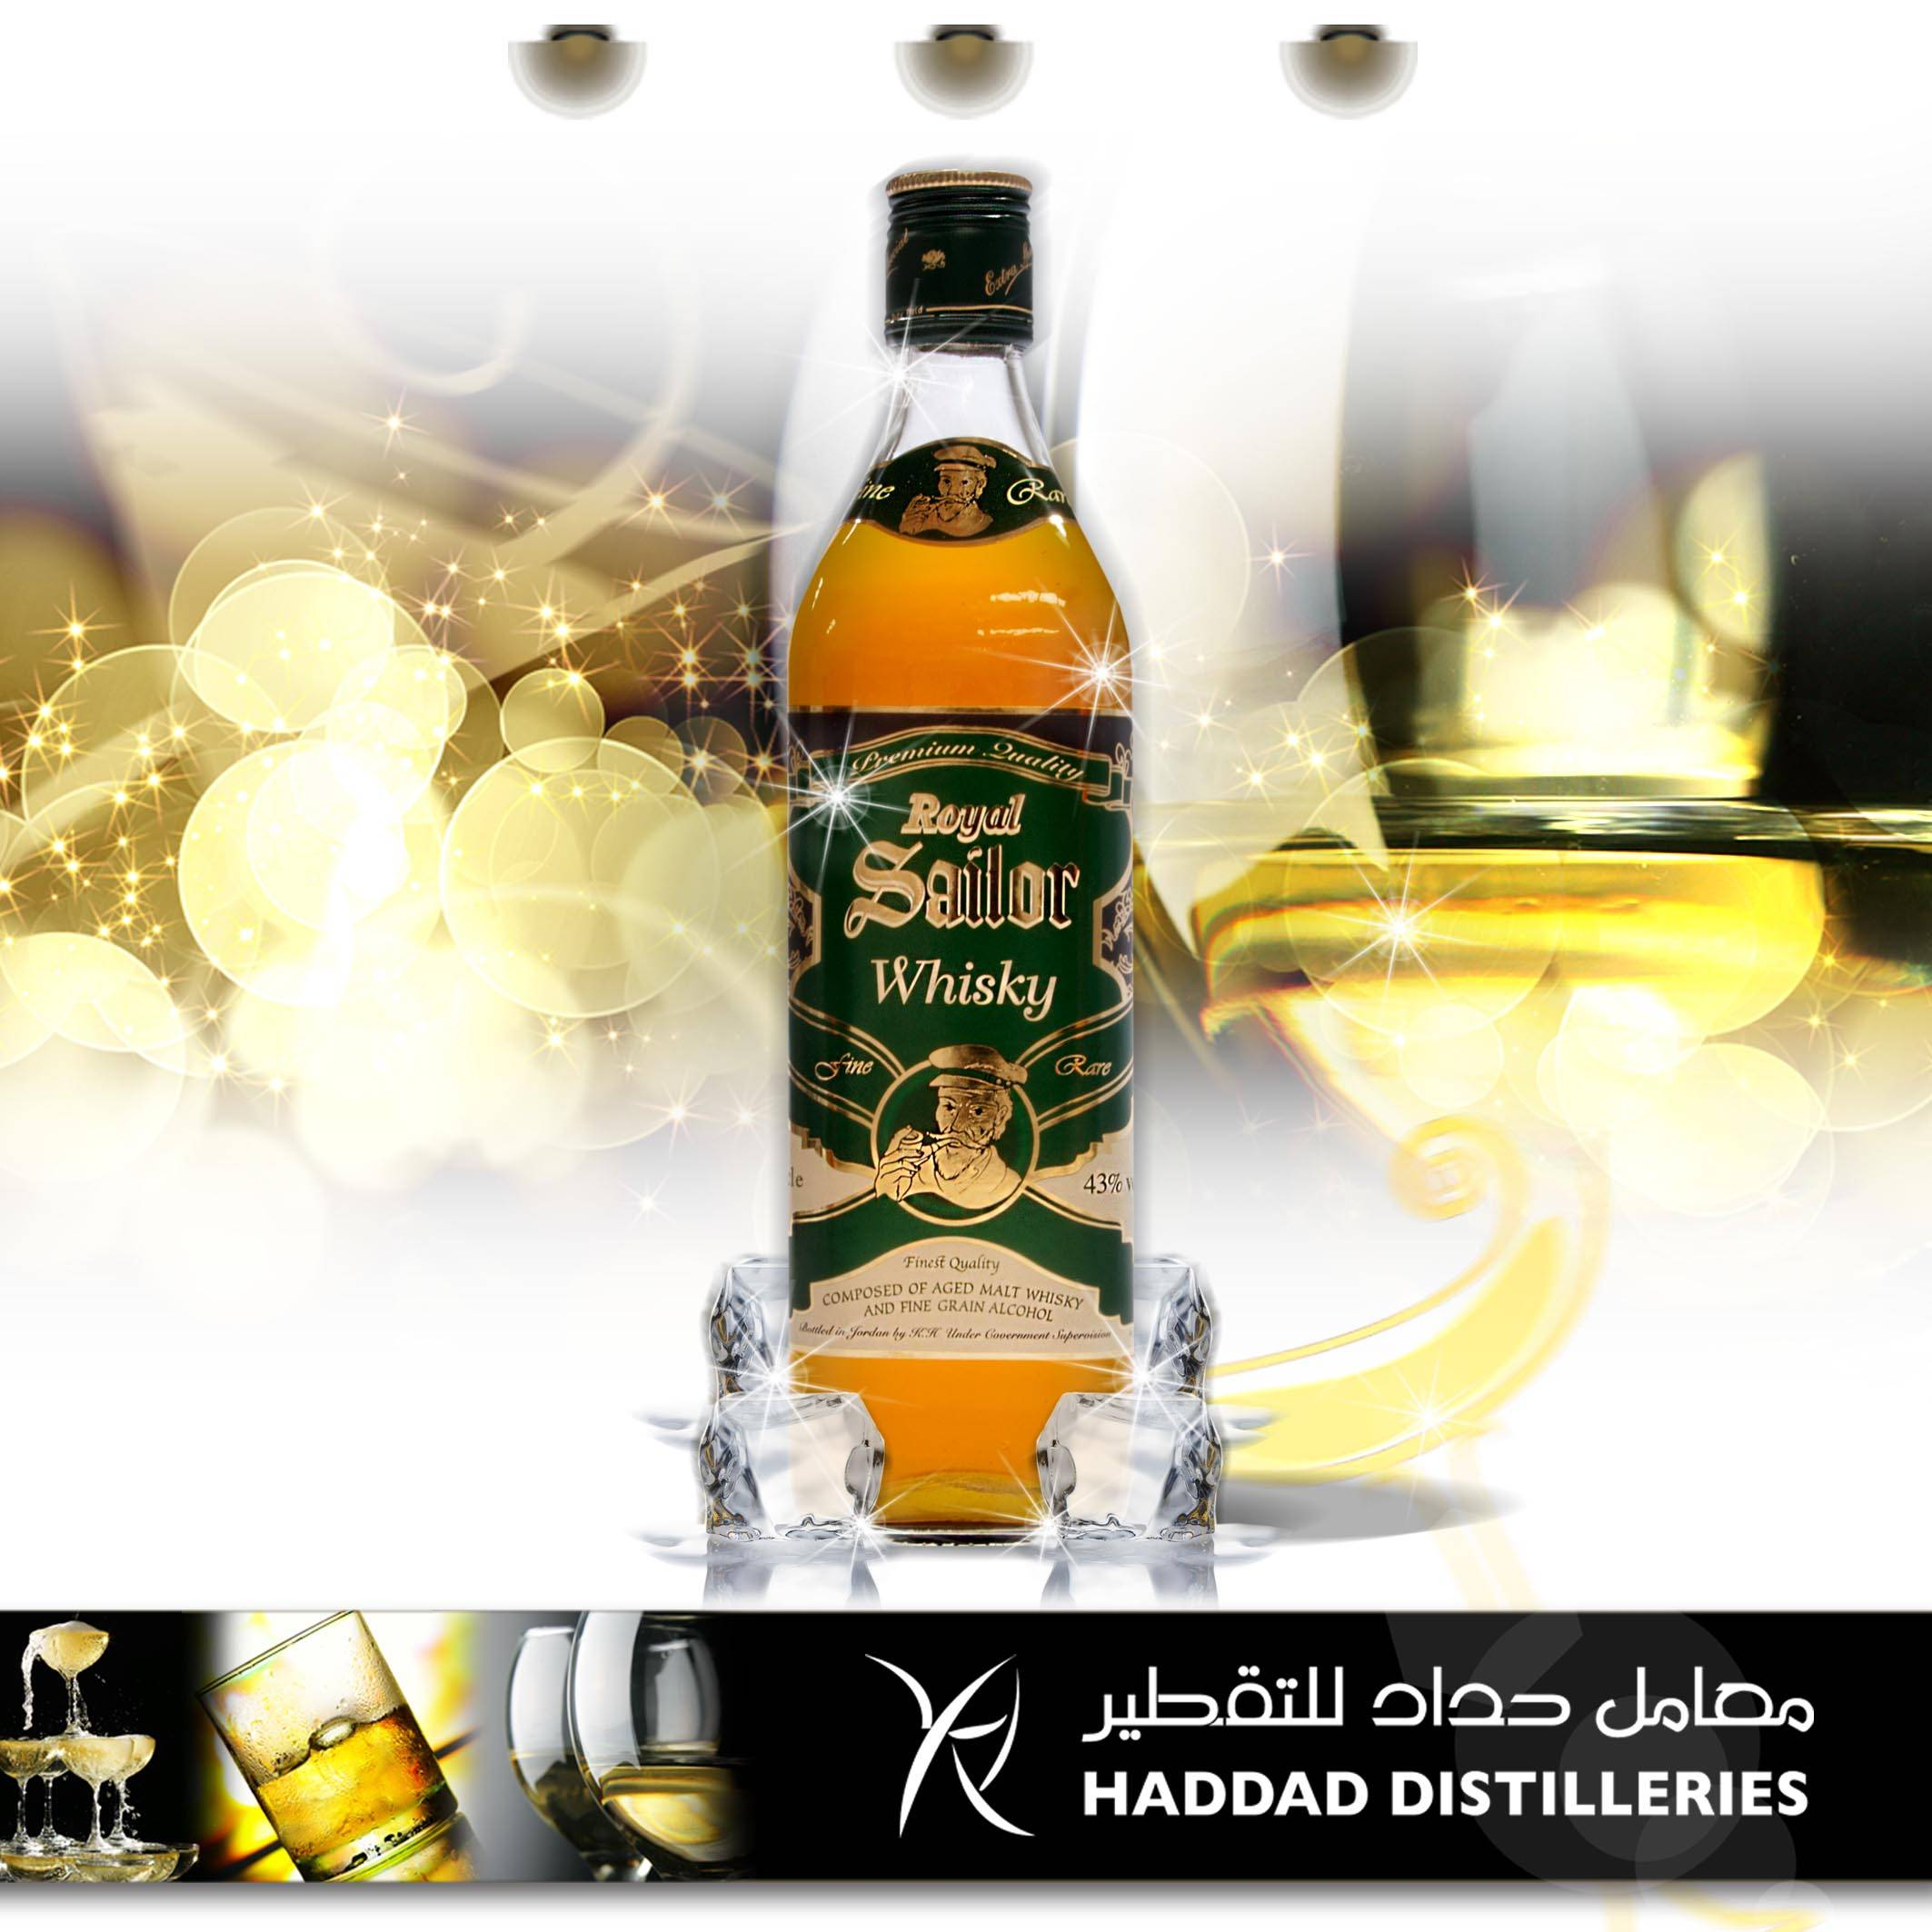 Royal Sailor Whisky